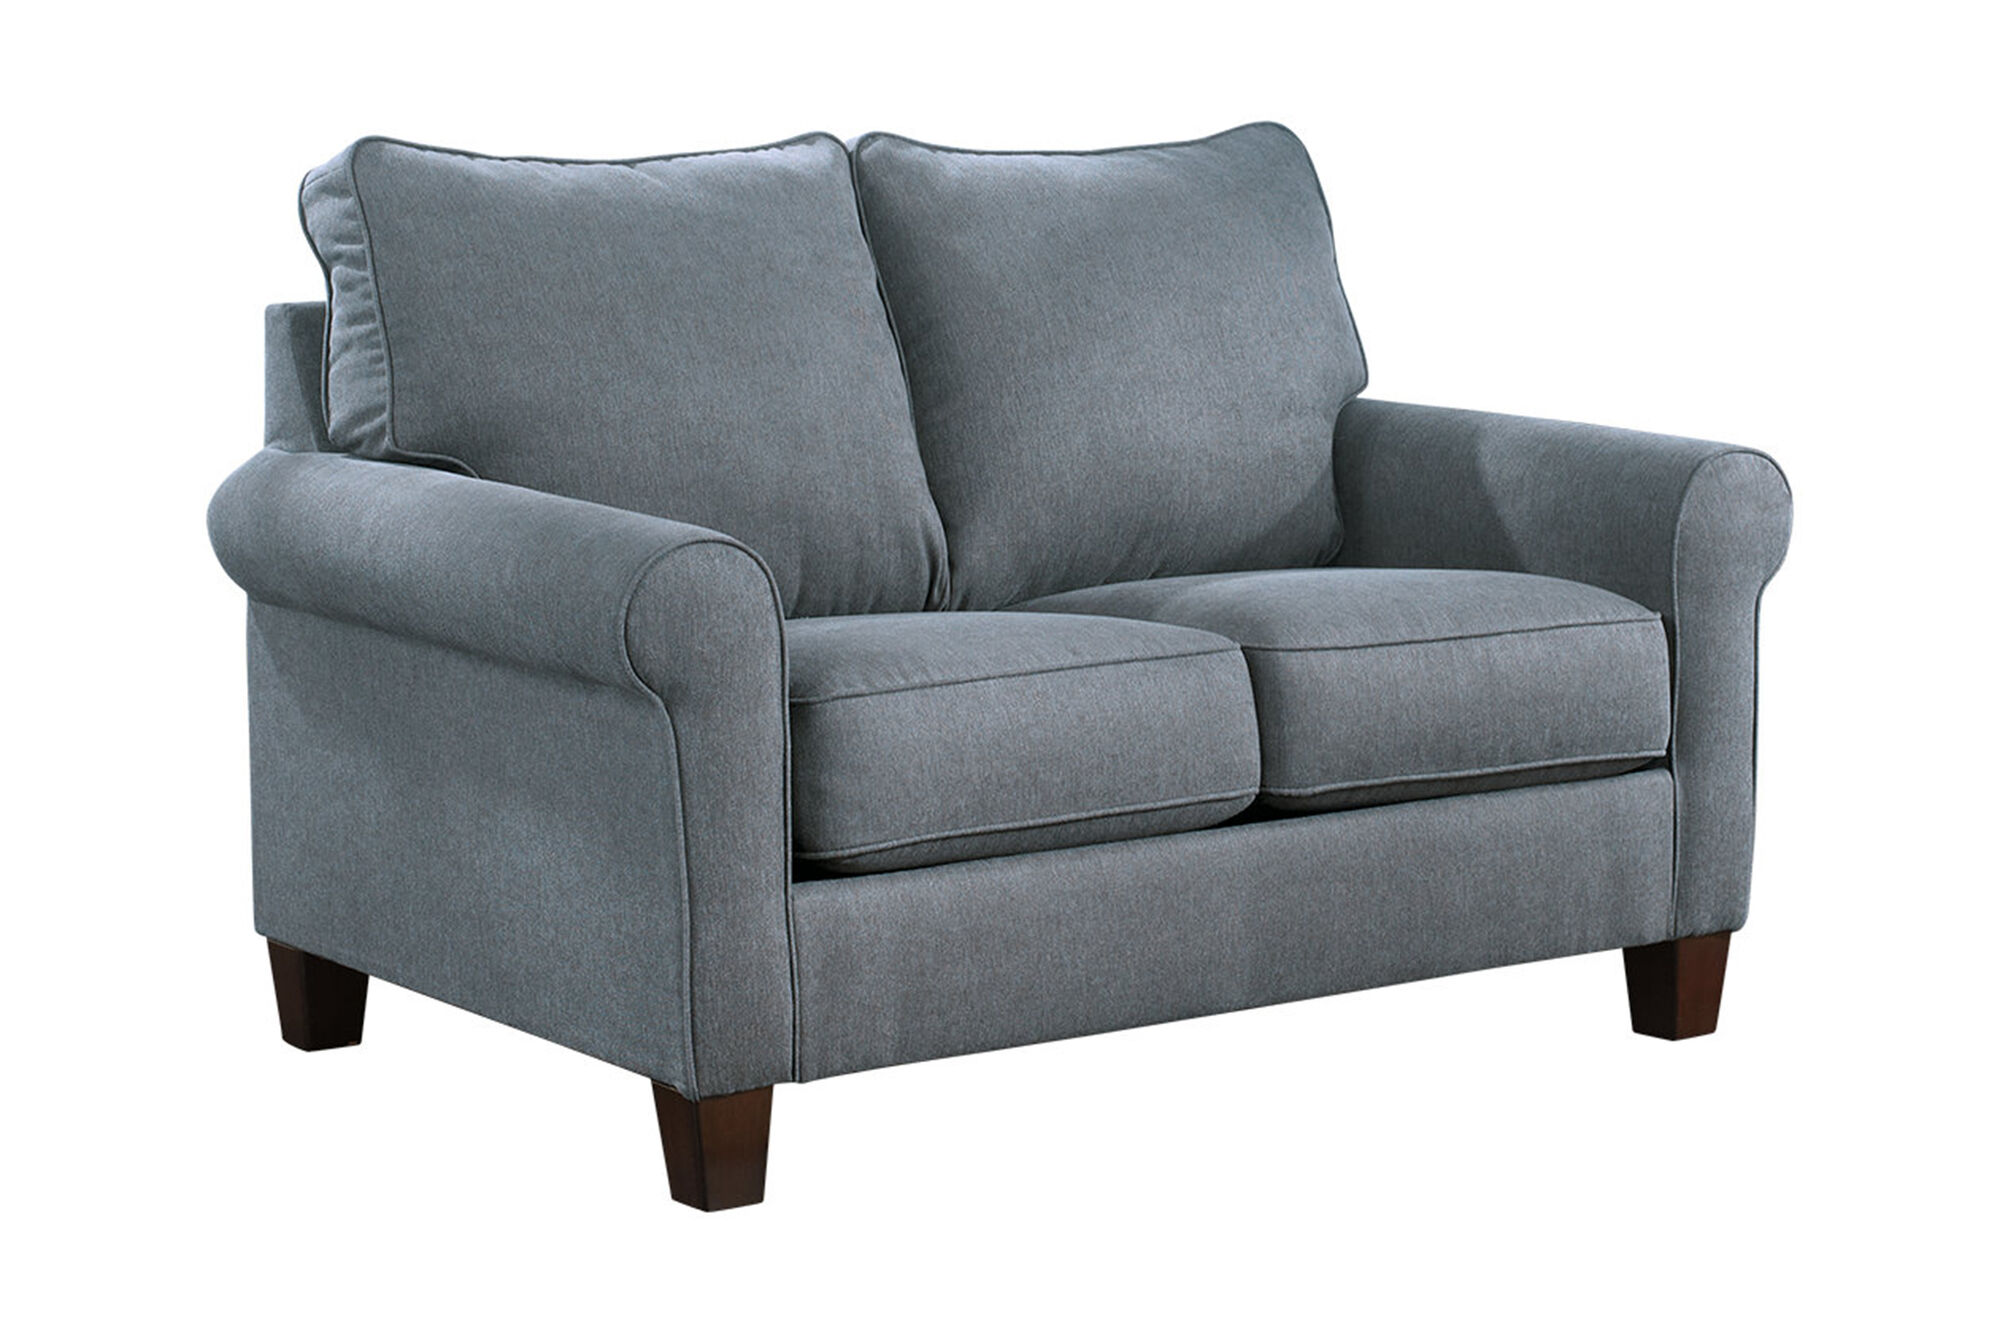 Contemporary 58 Quot Twin Sleeper Loveseat In Denim Blue